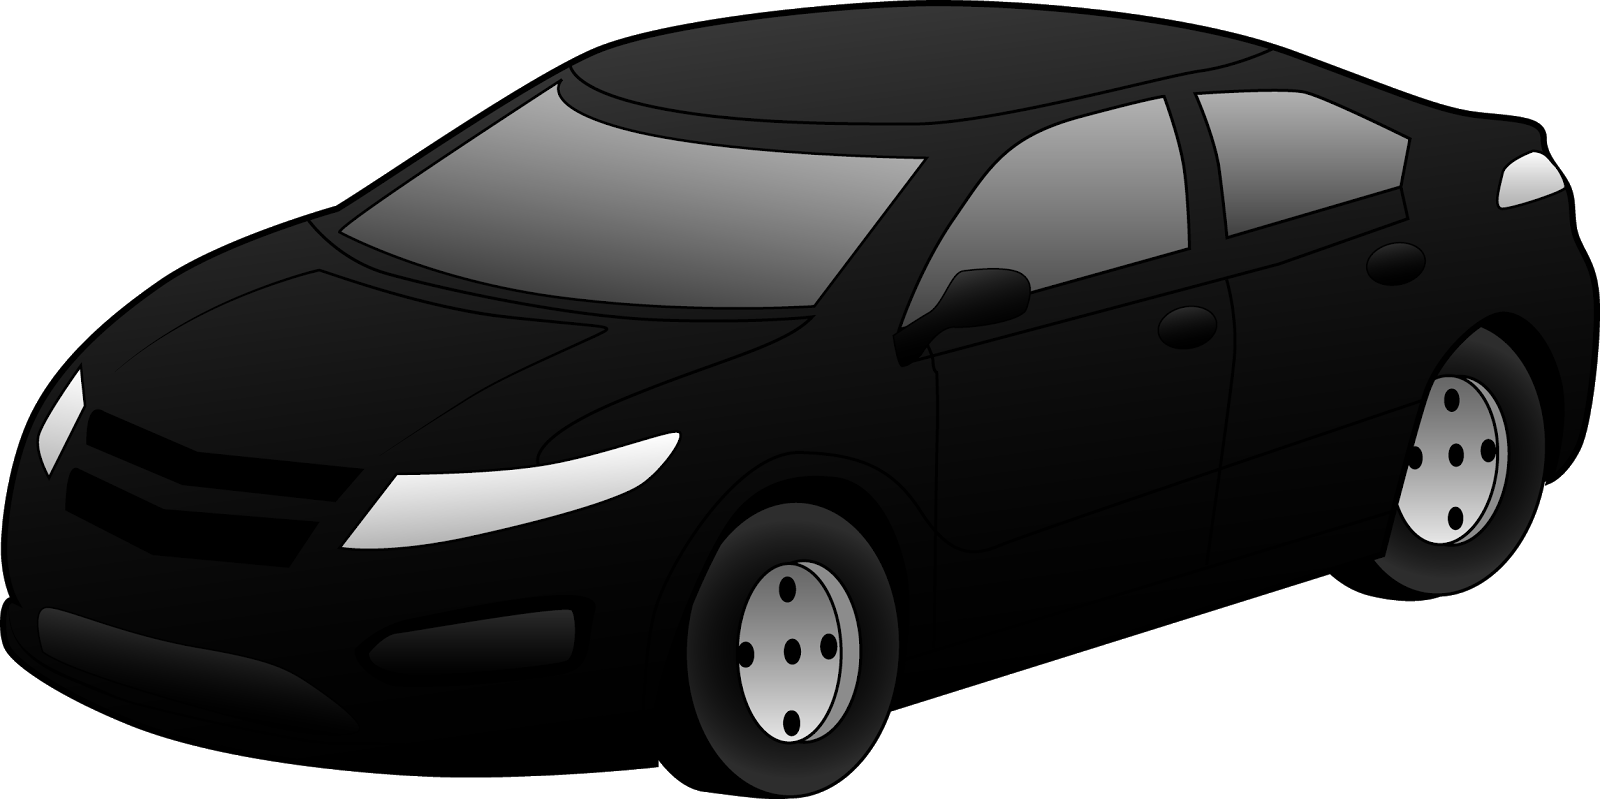 Car clipart black and white side view clipart royalty free download Image of car clip art cars clip art images free for - Clipartix clipart royalty free download